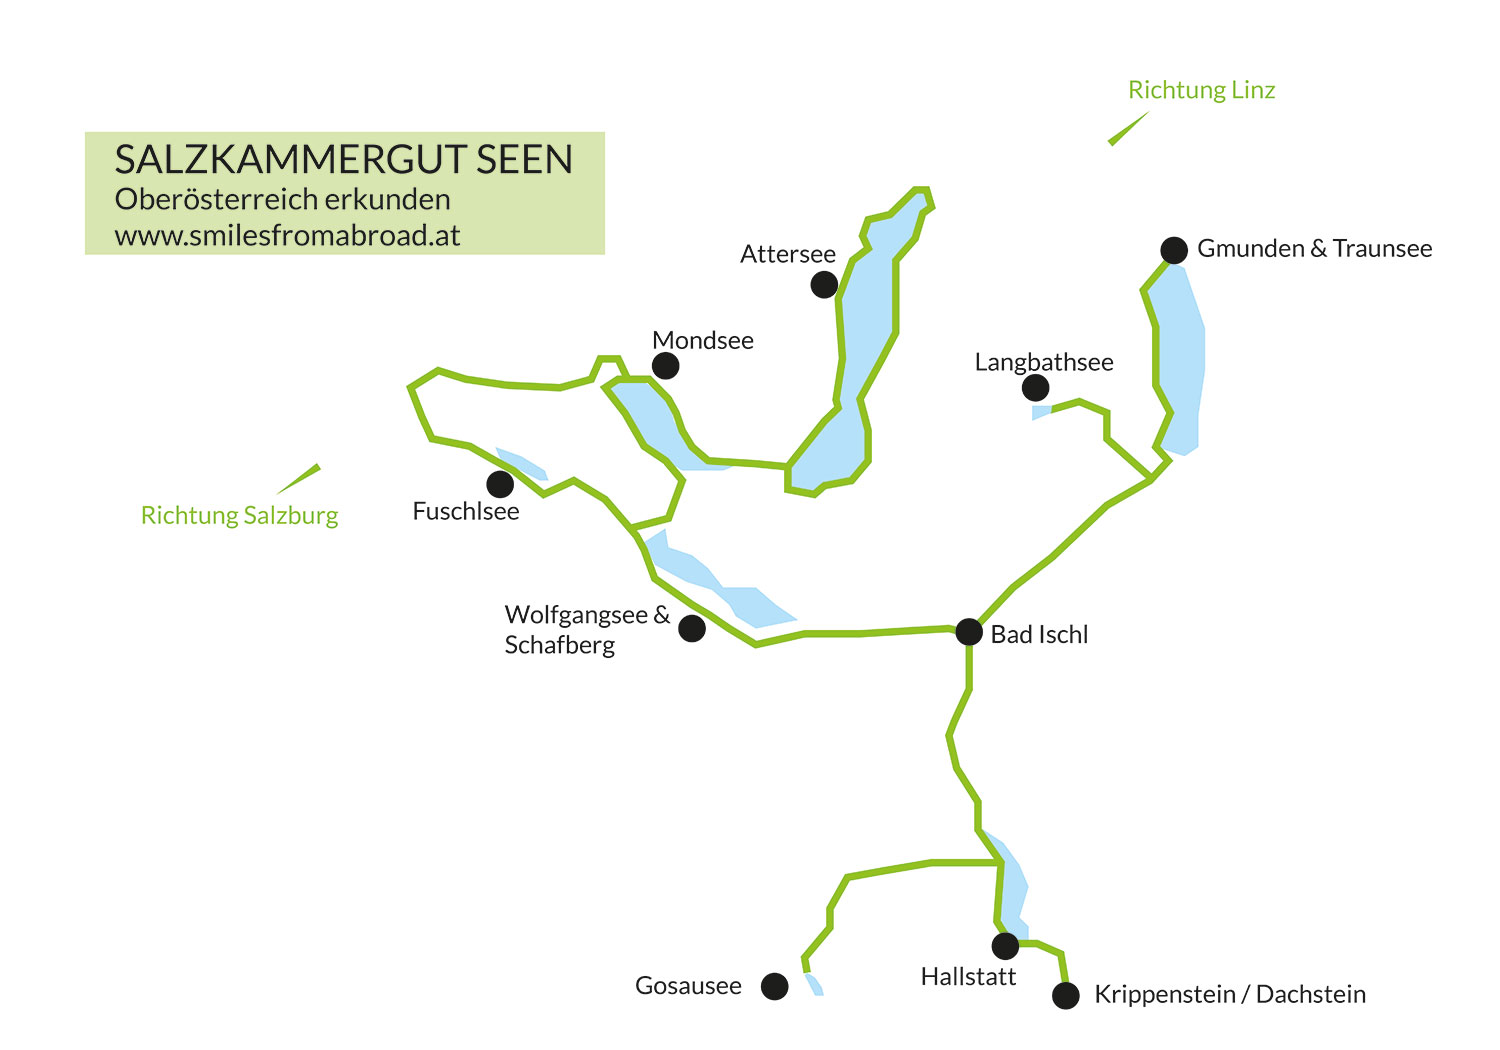 map of the salzkammergut region